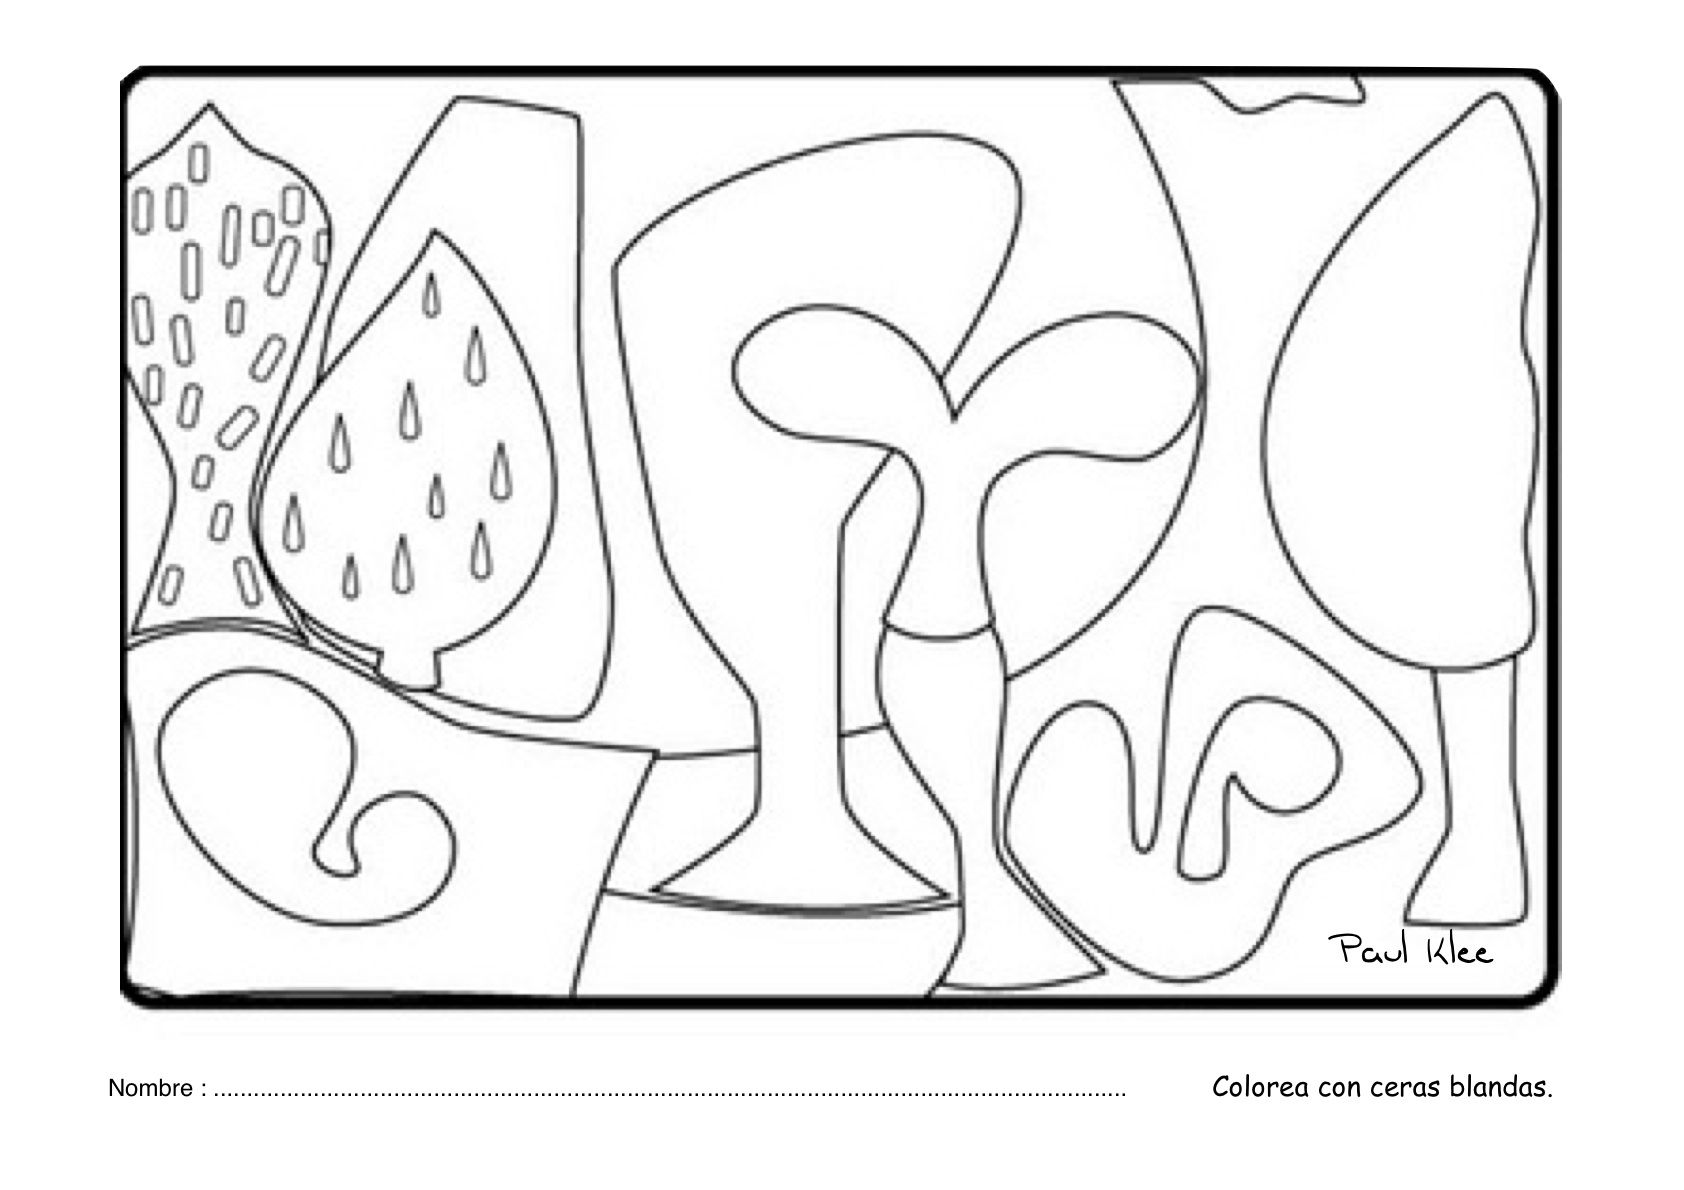 cuadros de paul klee para colorear - Buscar con Google | artists ...